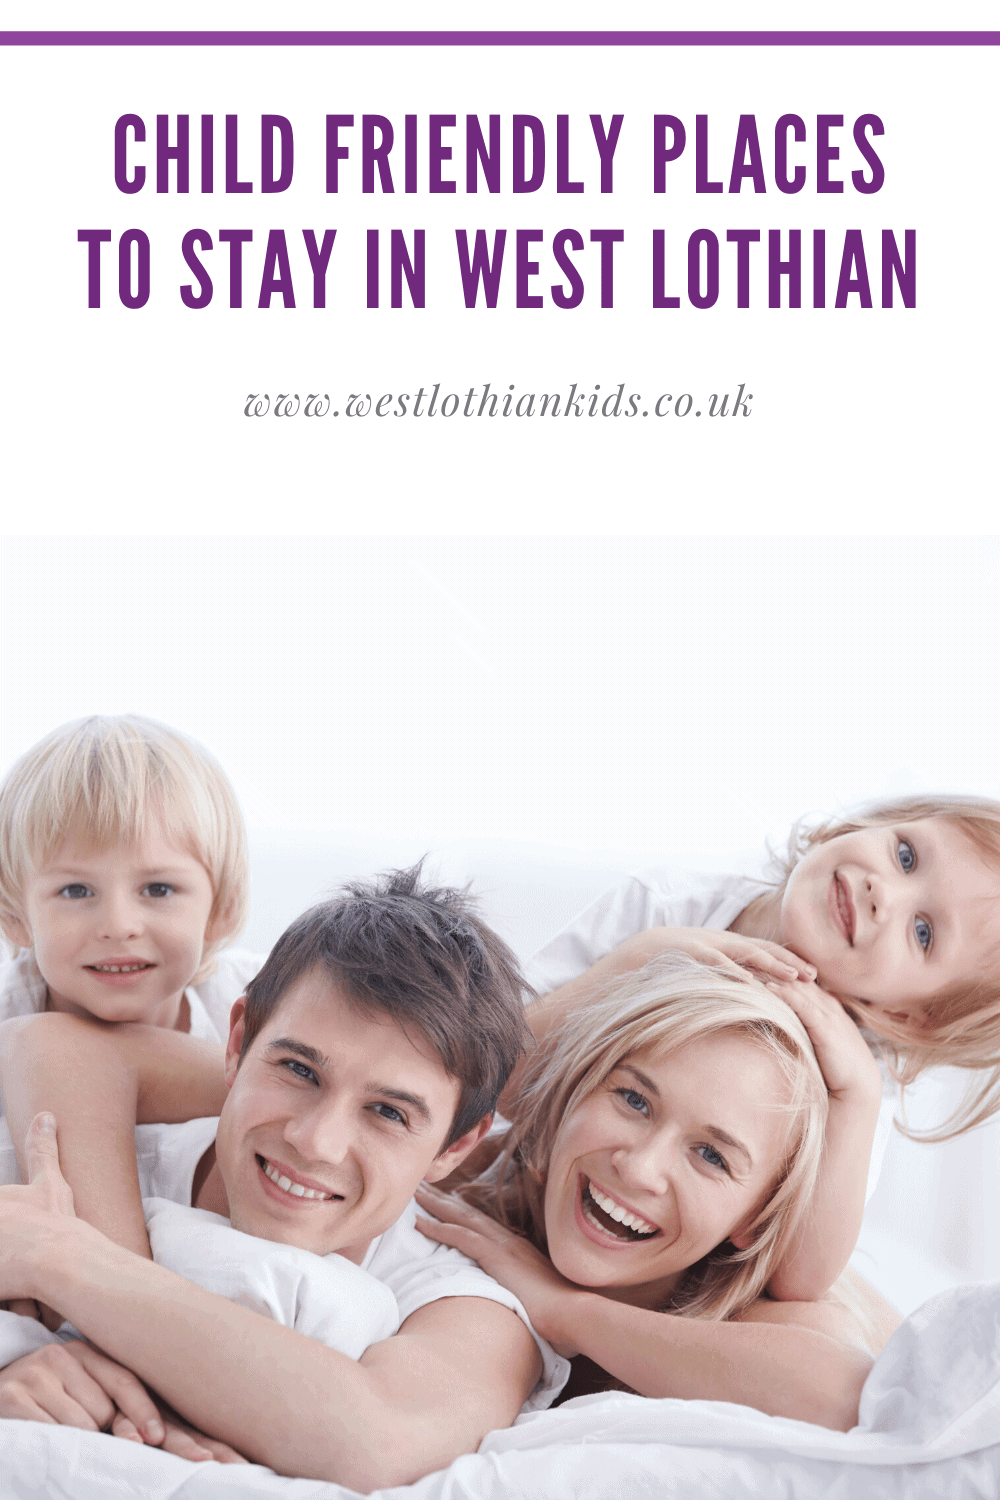 Child Friendly Places To Stay in West Lothian | Family Friendly Accommodation in West Lothian